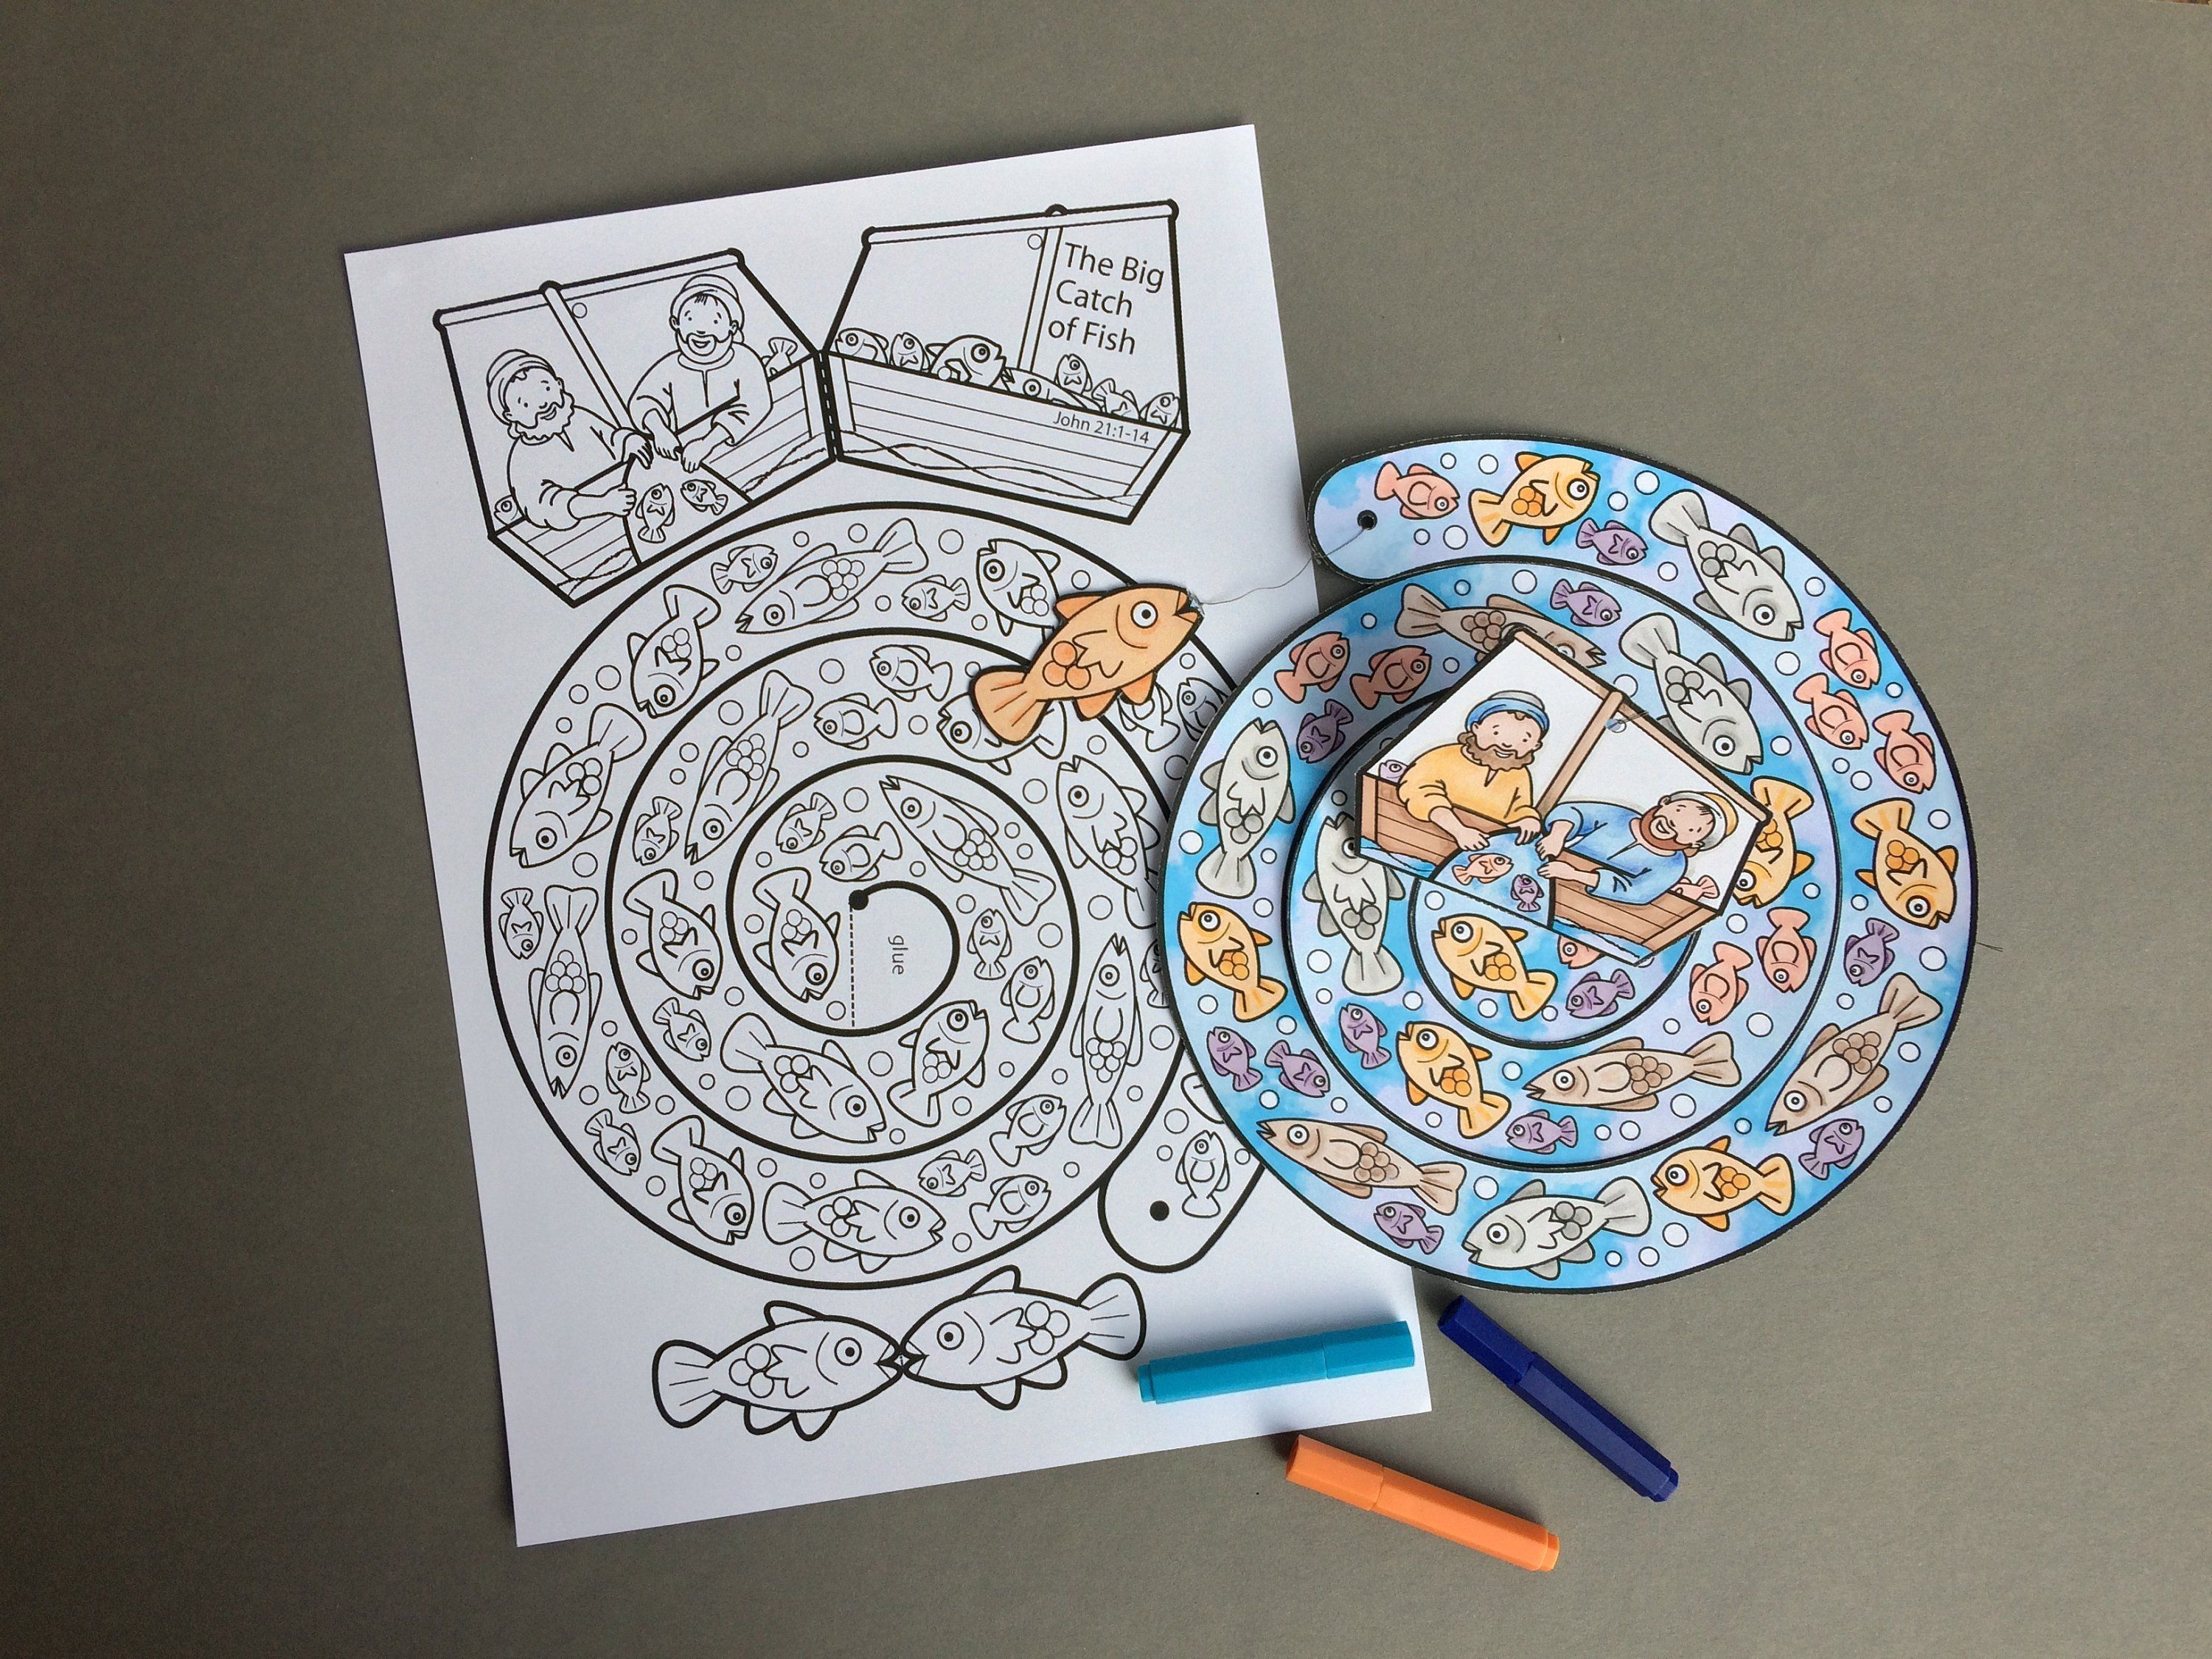 The Big Catch Of Fish Colour In Mobile Colouring Page Based On